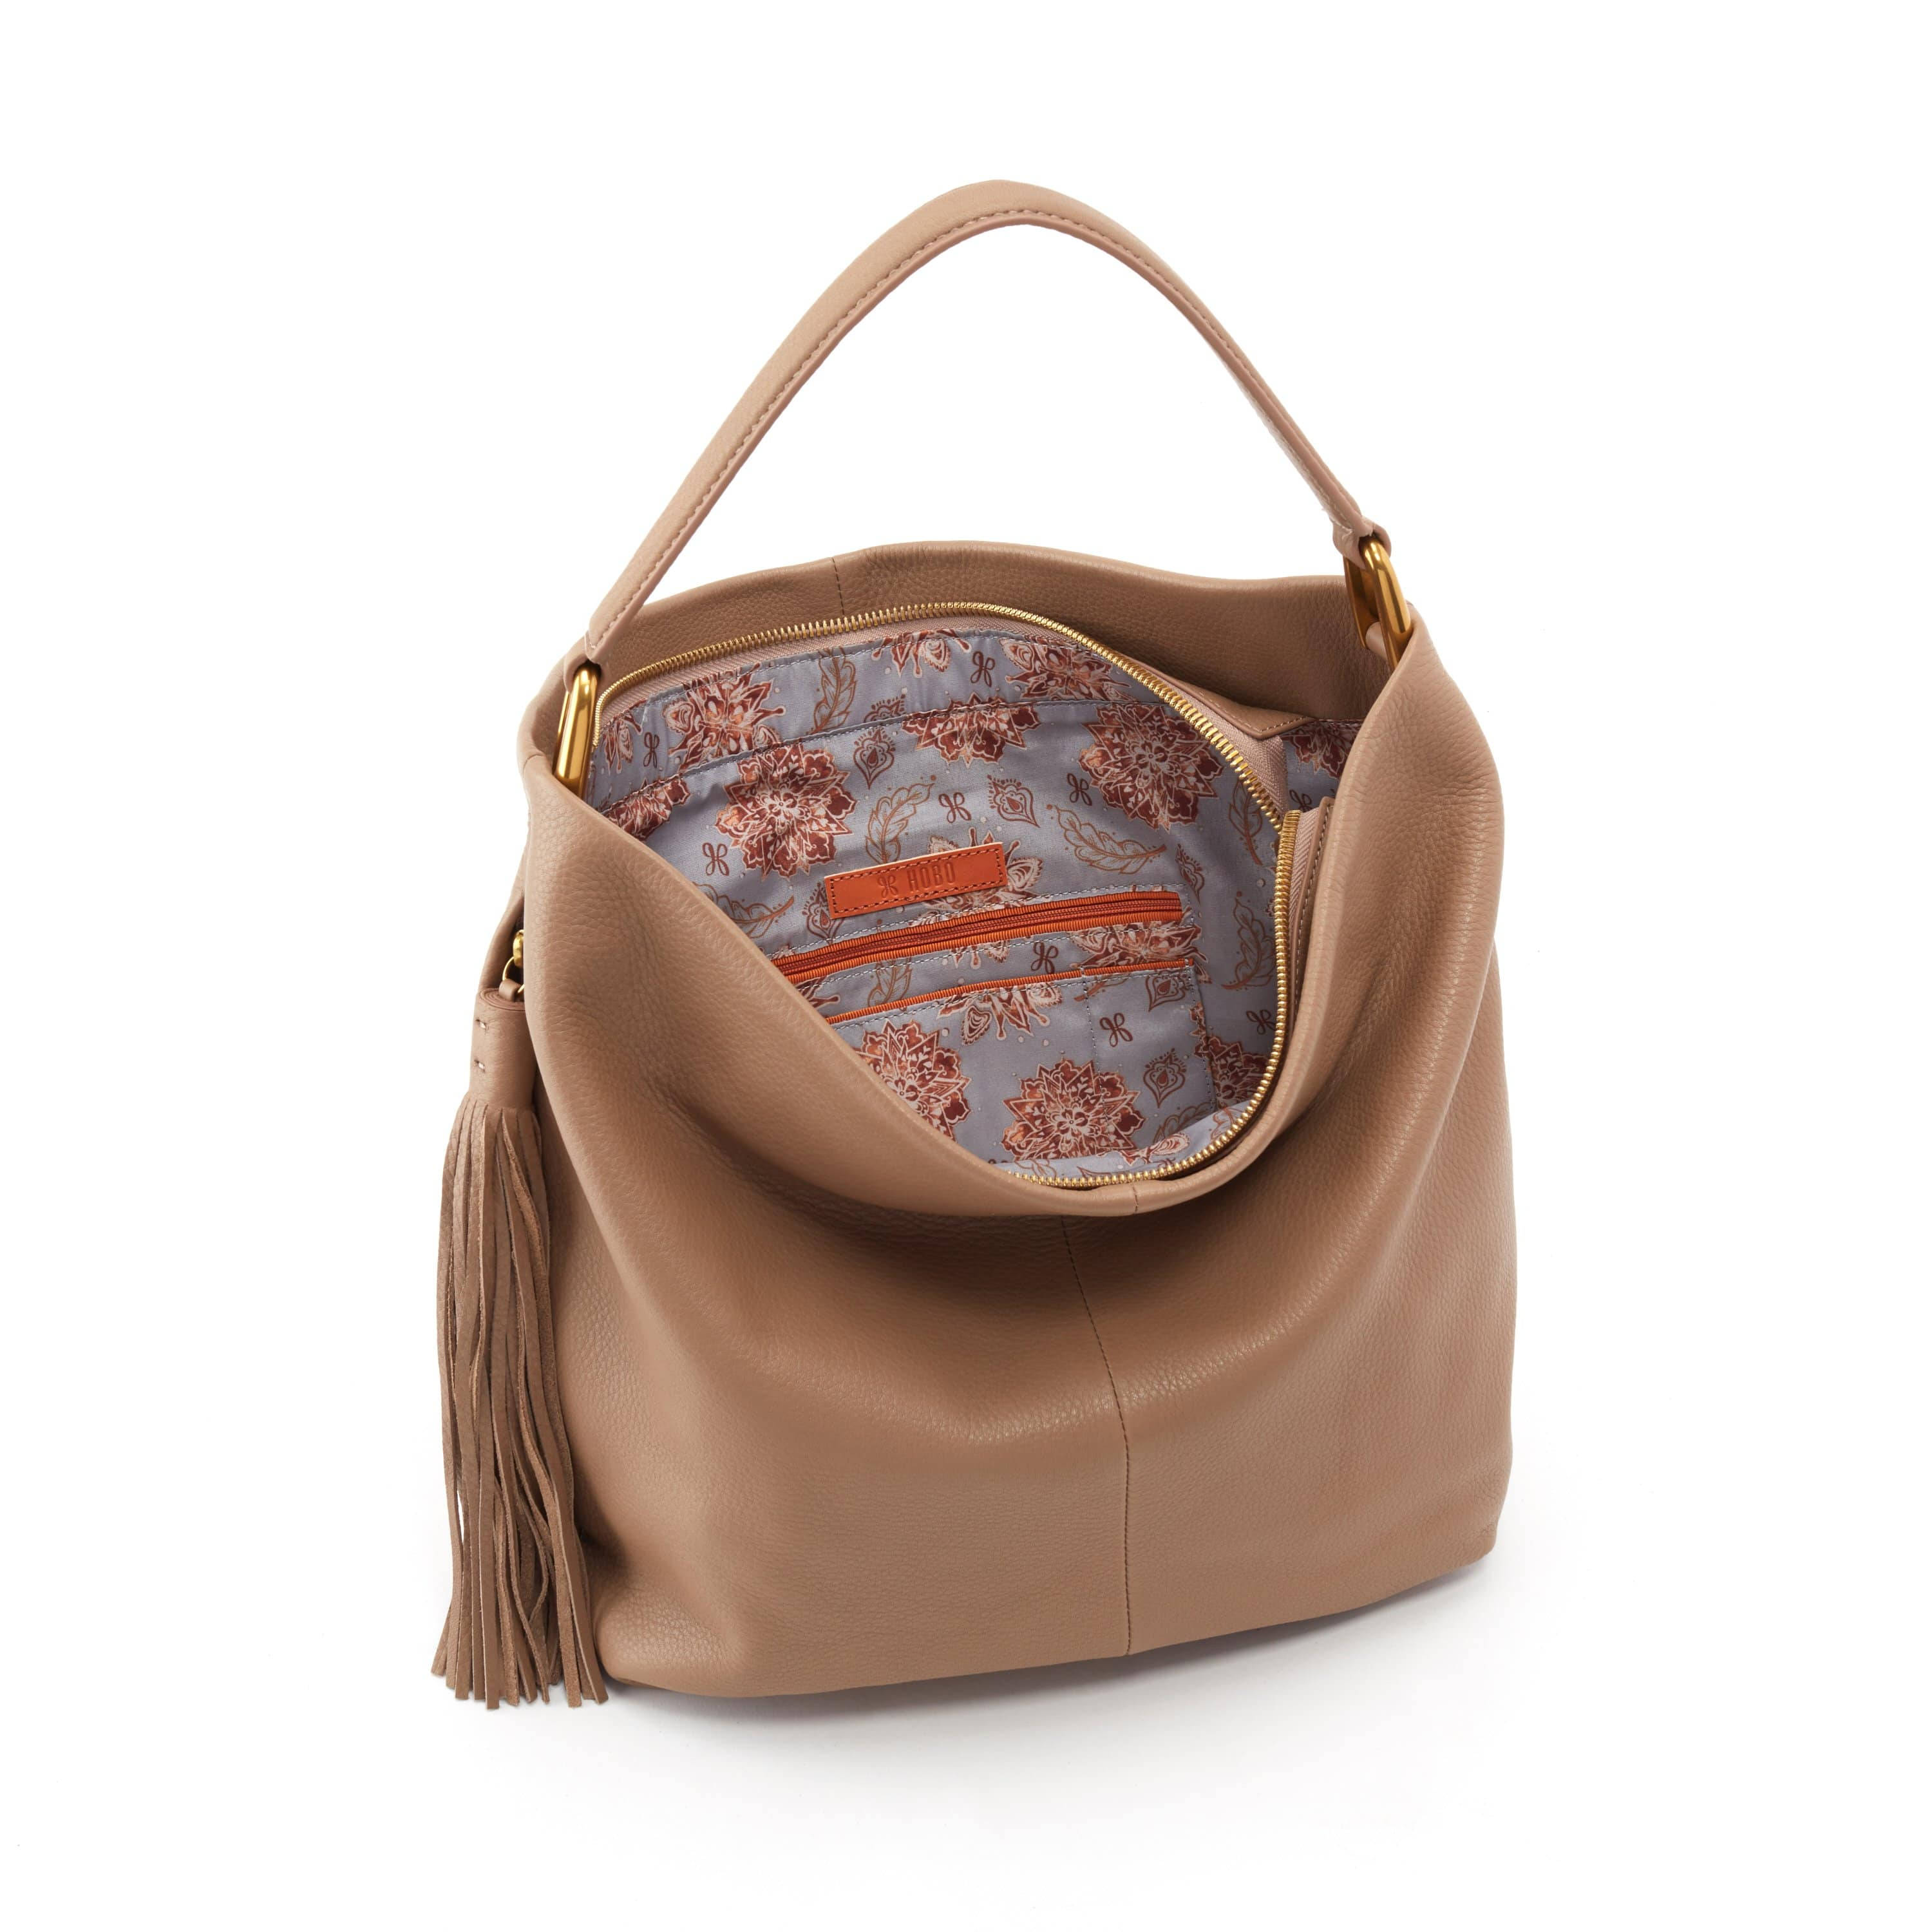 Hobo SO-82221 Meridian Women's Leather Over the Shoulder Bag Purse